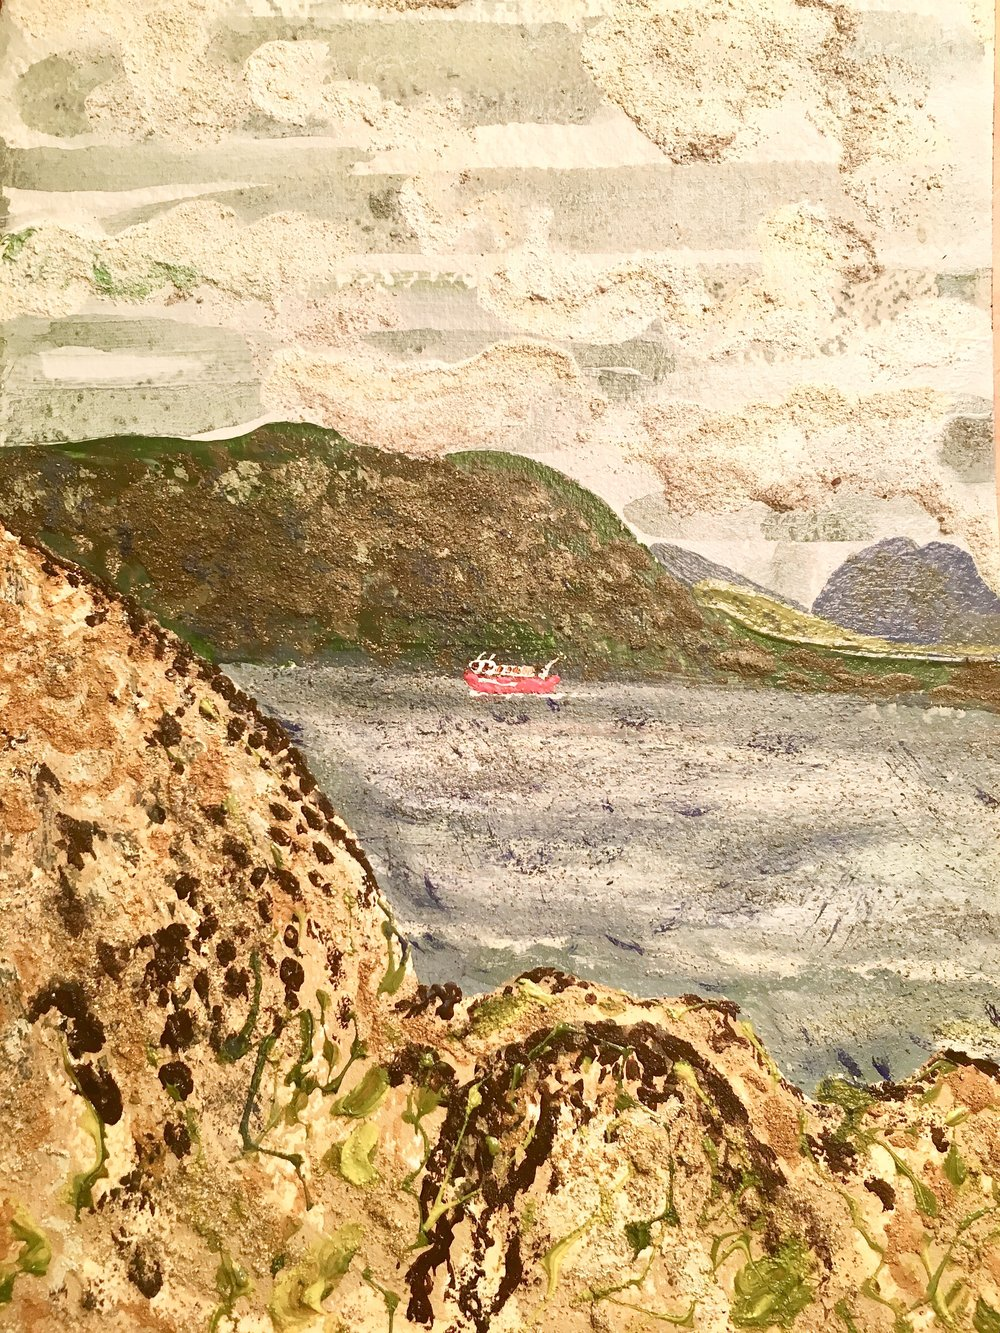 Post boat, Cleggan to Inishbofin, Co. Galway, mixed media on paper 26x18cm (framed) August 2018 £400